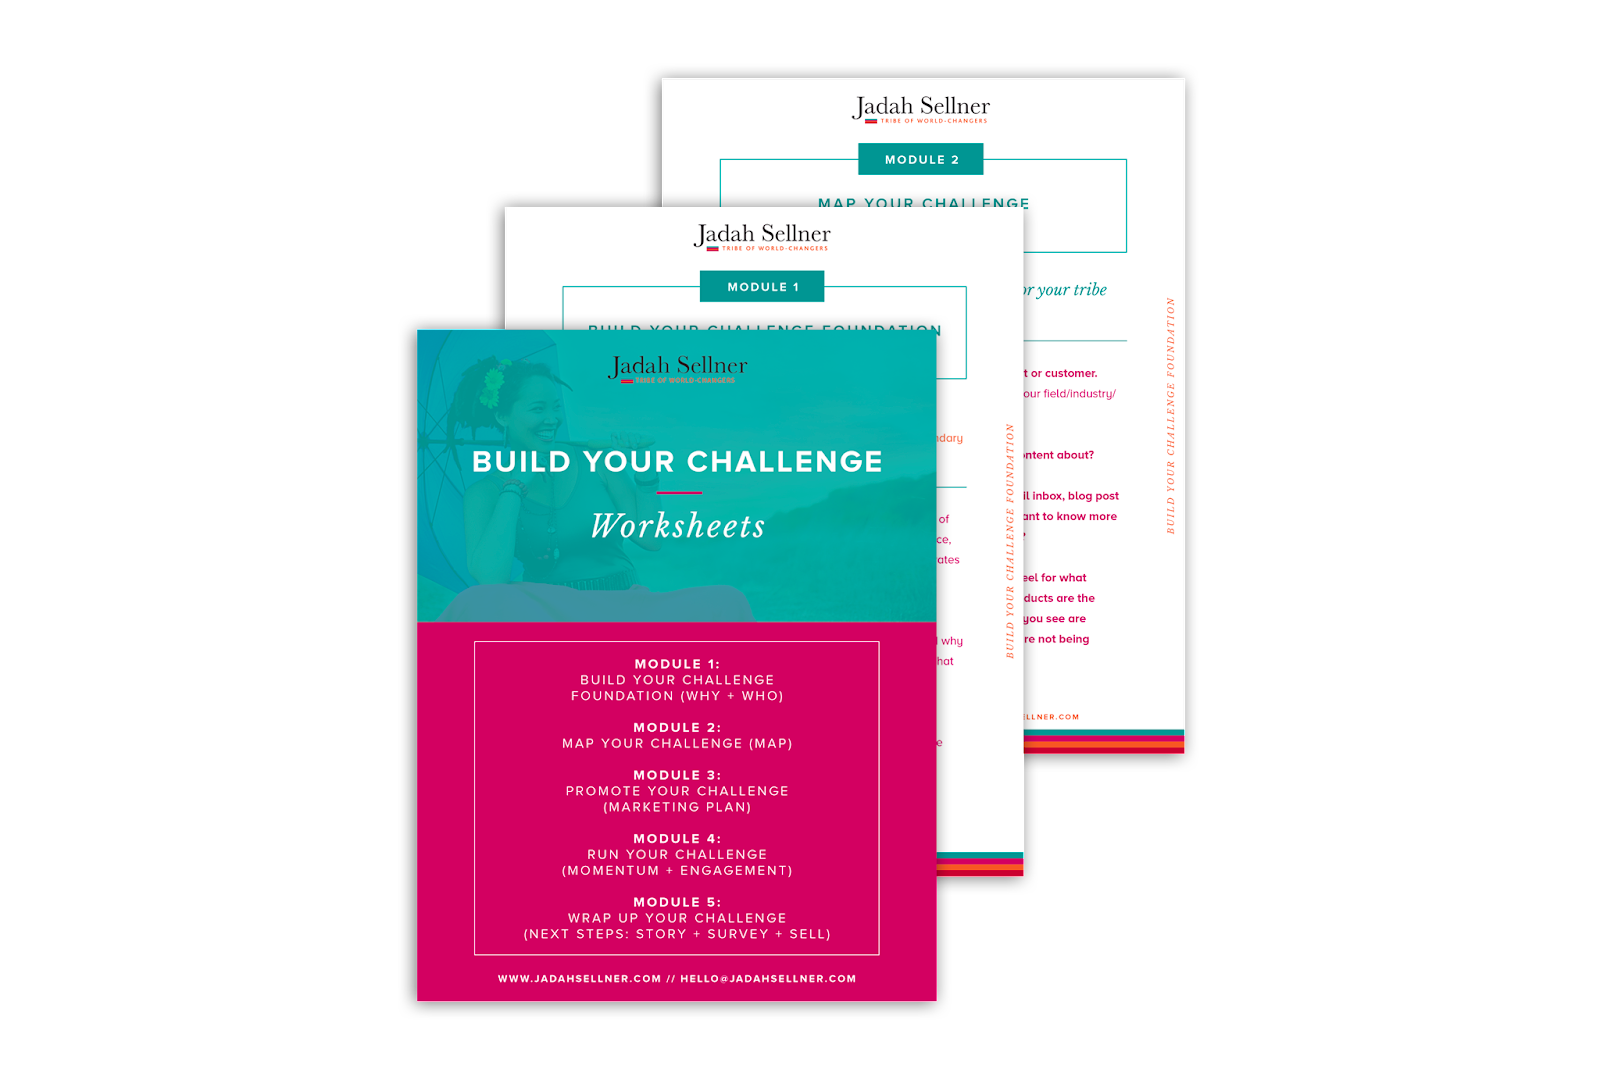 Build your challenge love over metrics lab with jadah sellner paid course coupon discount fandeluxe Image collections